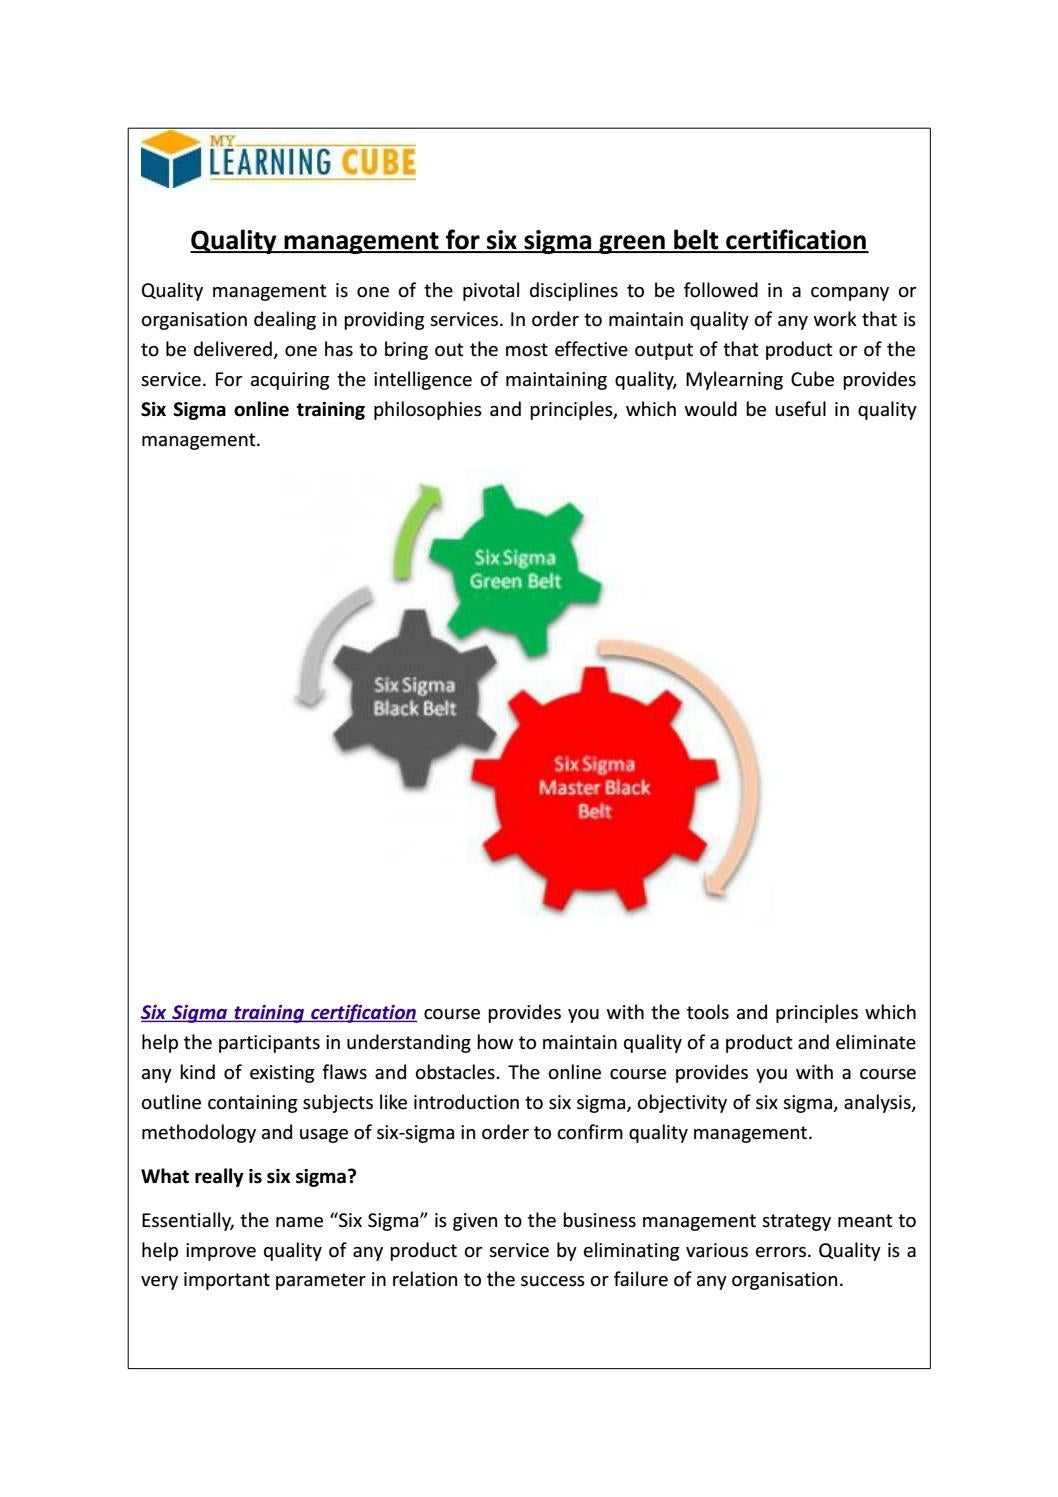 Six Sigma Training And Certification Online By Mylearningcube Issuu